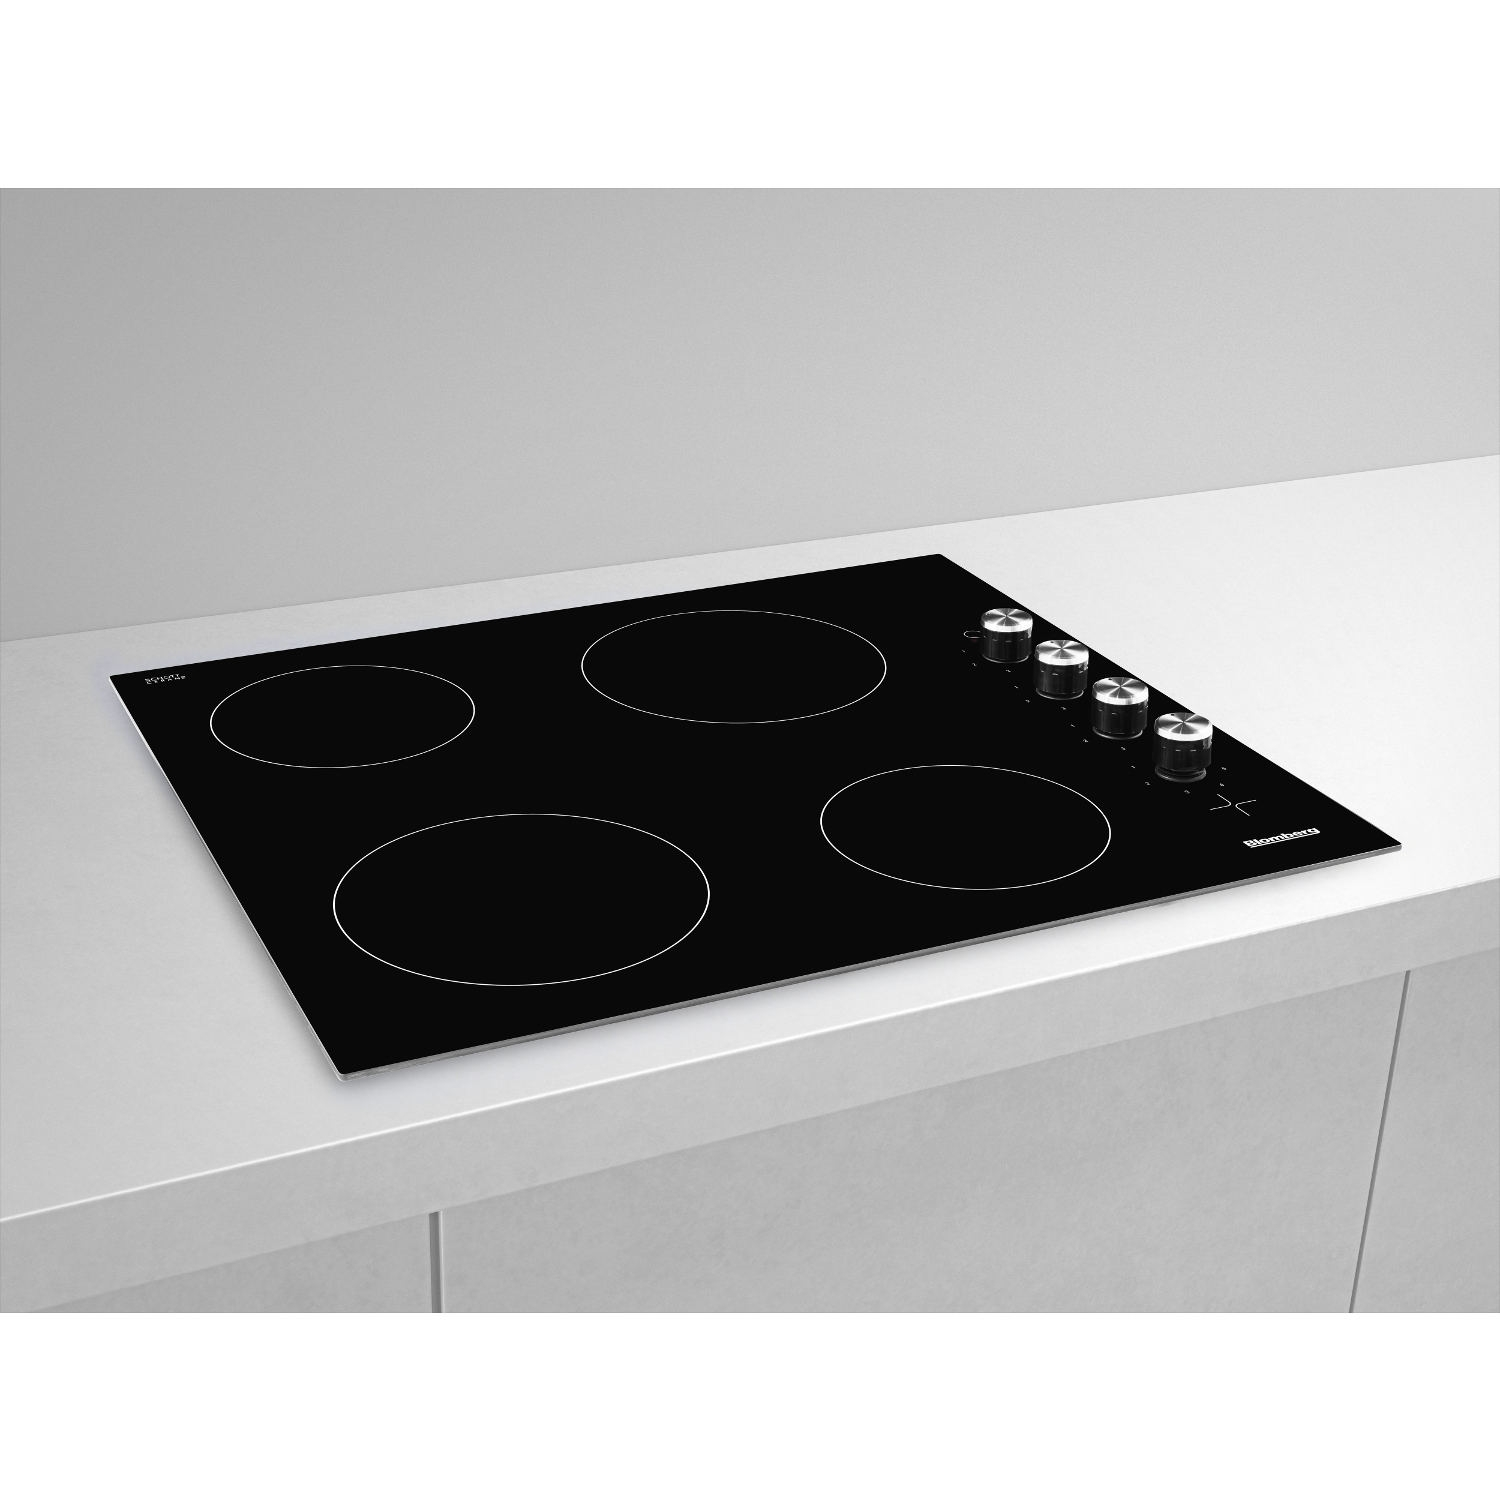 Blomberg MKN24001 in kitchen